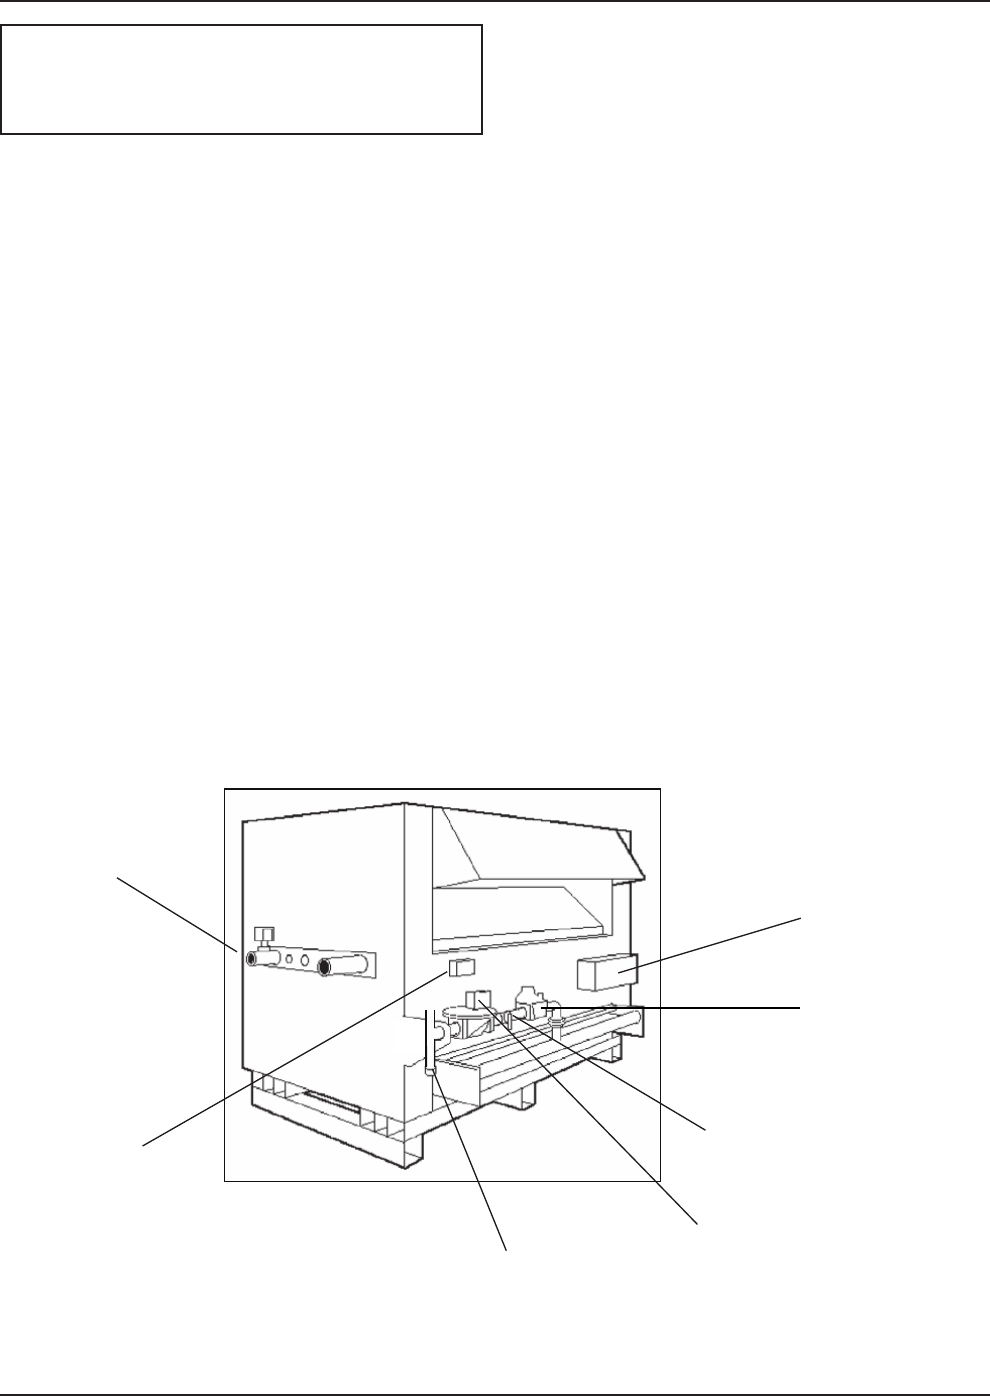 Raypak H3 1336 Wiring Diagram Library Raytherm 133 4001 Users Manual 600059 New Rp2100 39